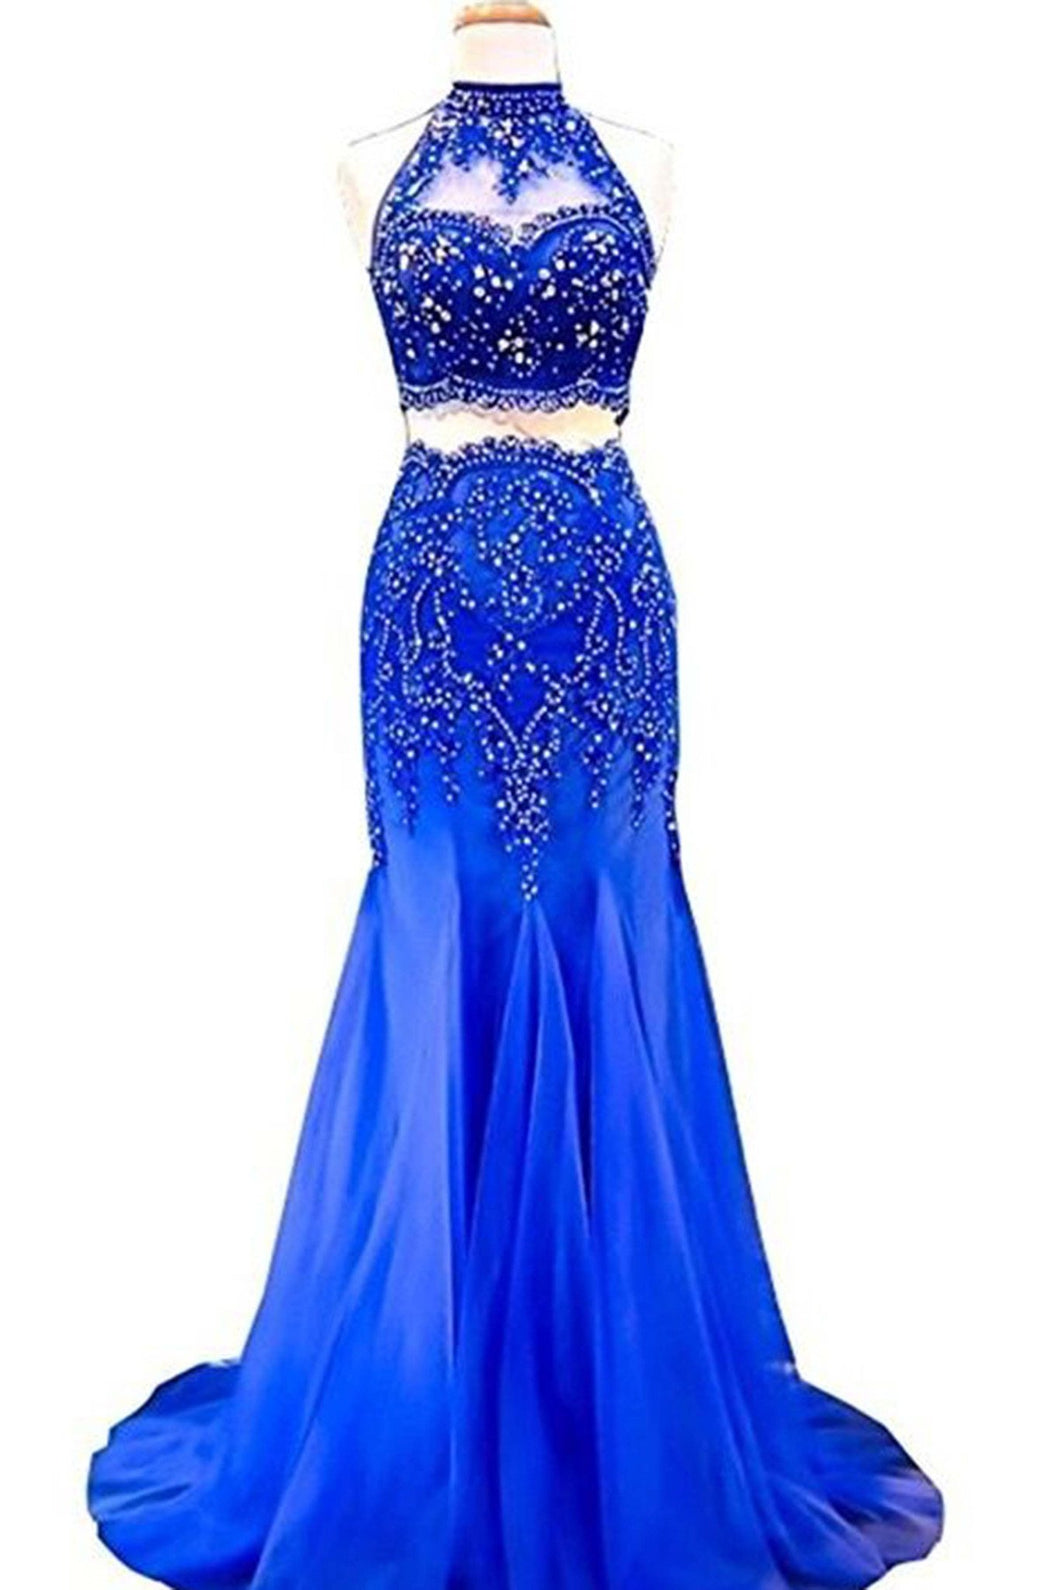 2018 evening gowns - Navy blue chiffon round neck sequins mermaid long dresses,evening dresses